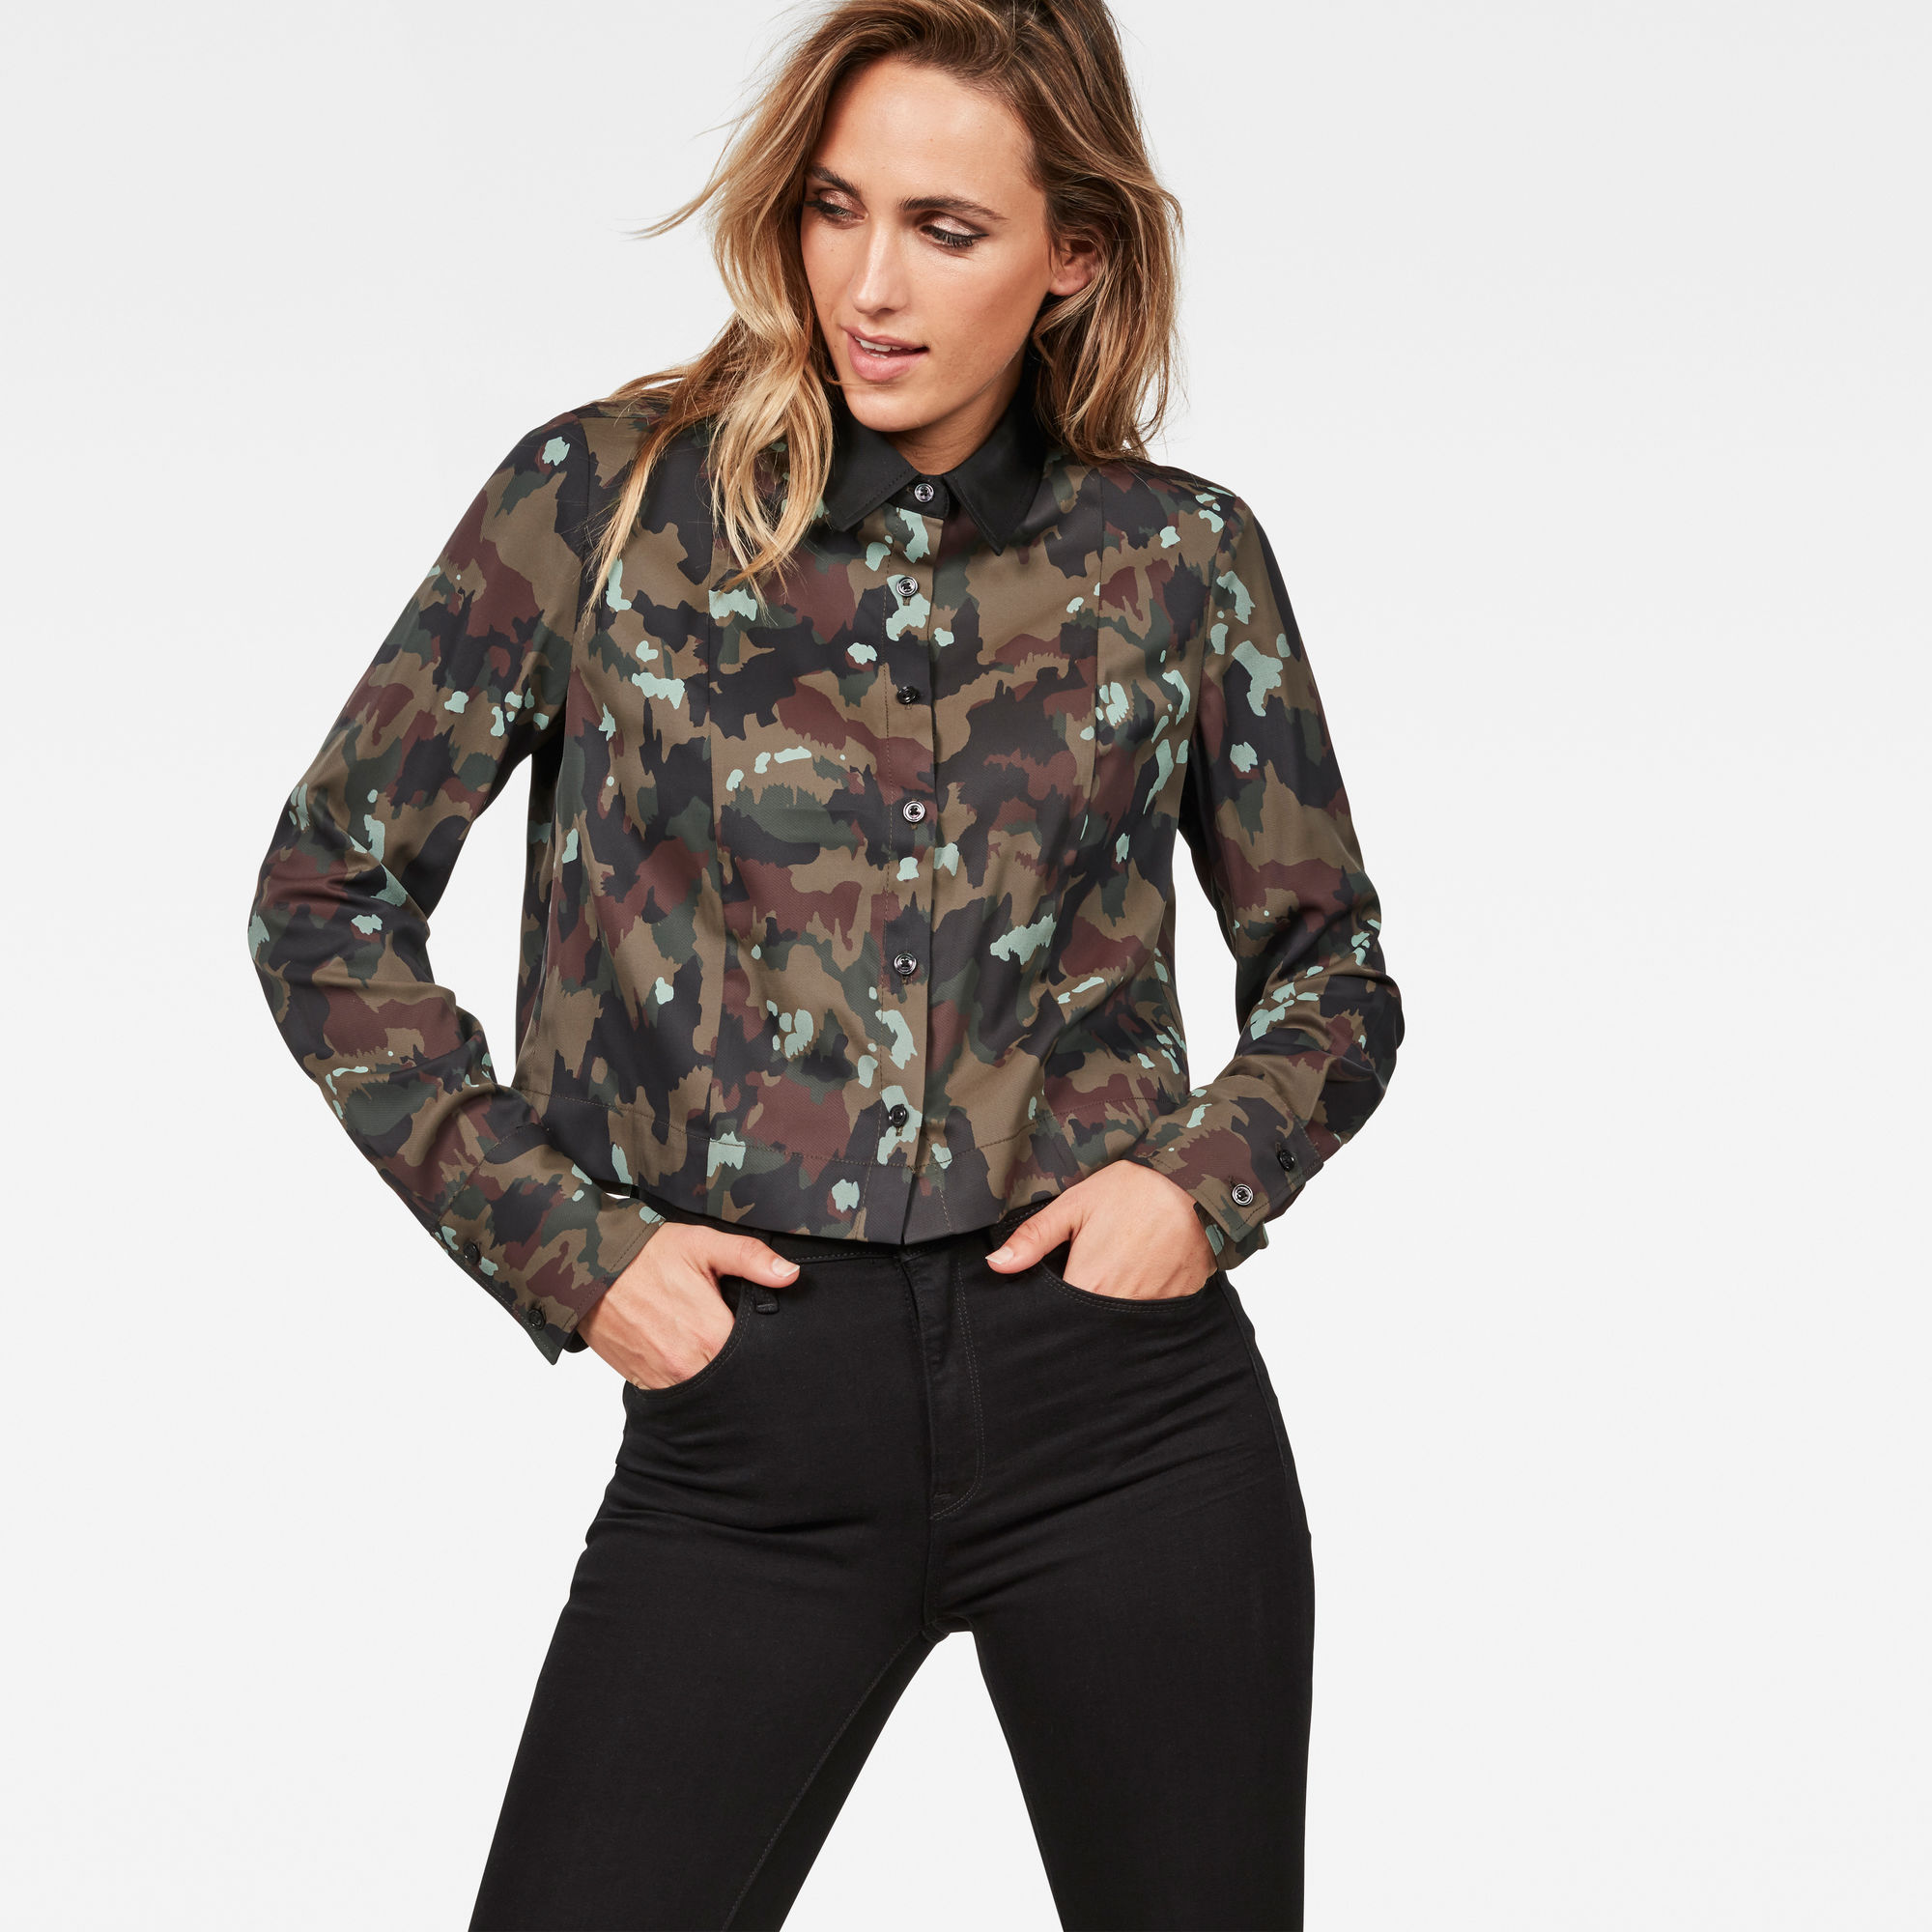 Image of G Star Raw Vodan Cropped Shirt